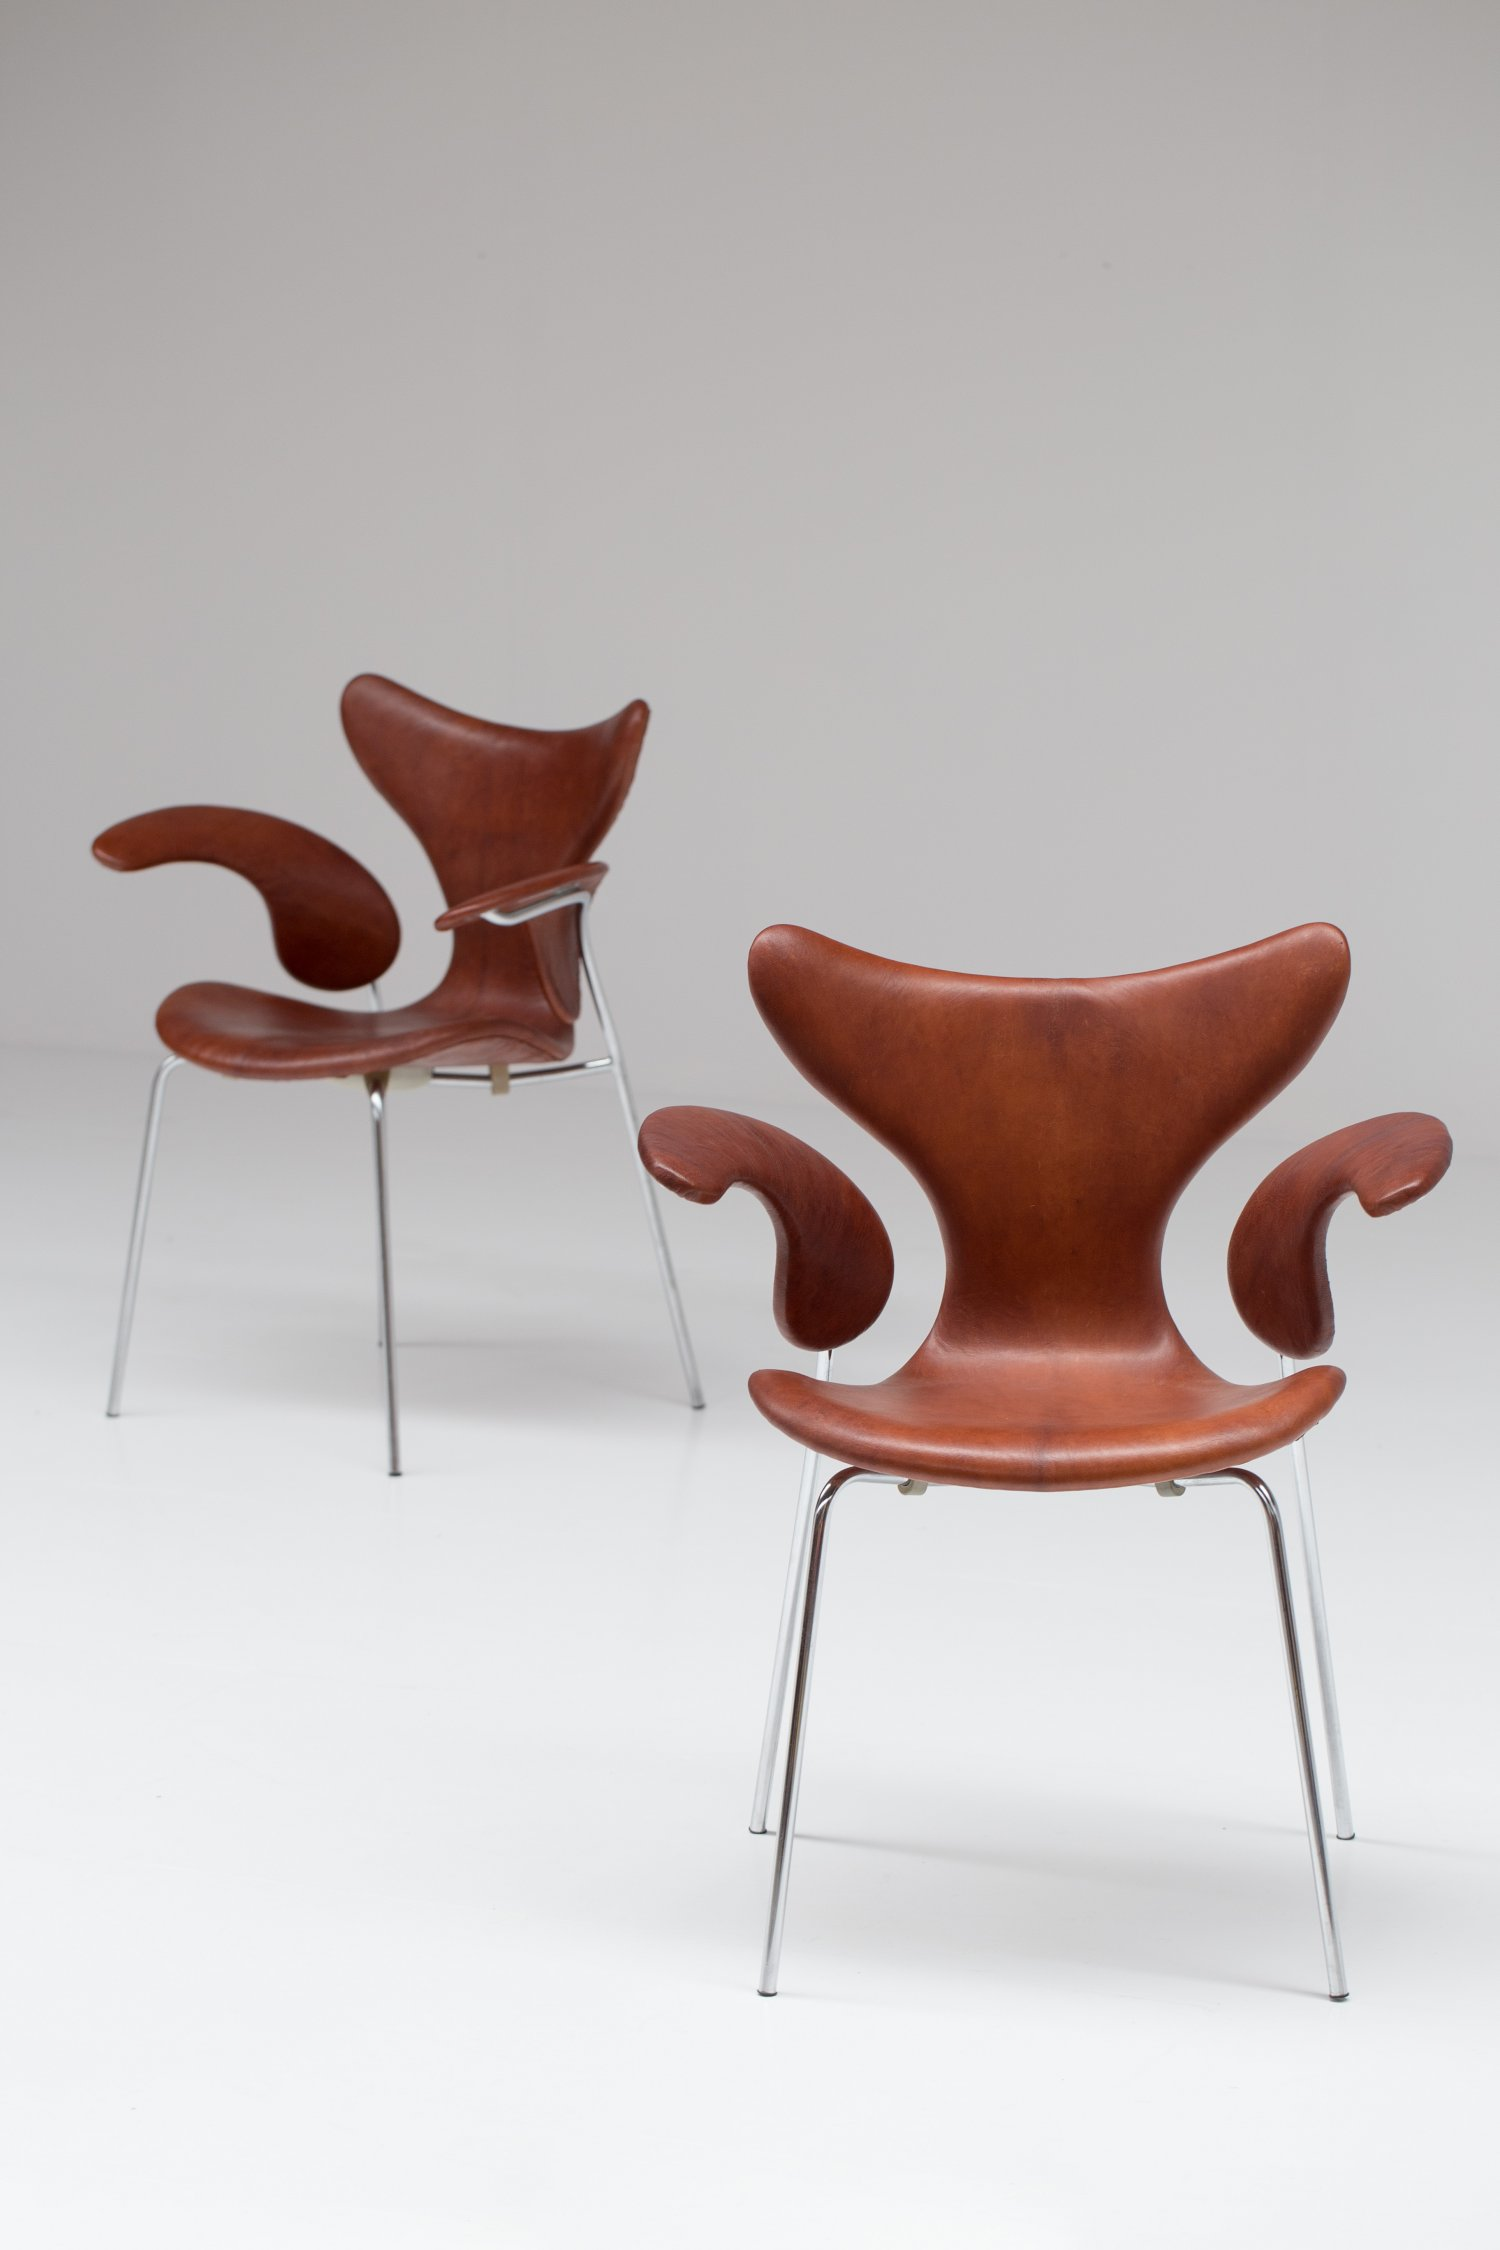 Pair of leather seagull chairs by Arne Jacobsen